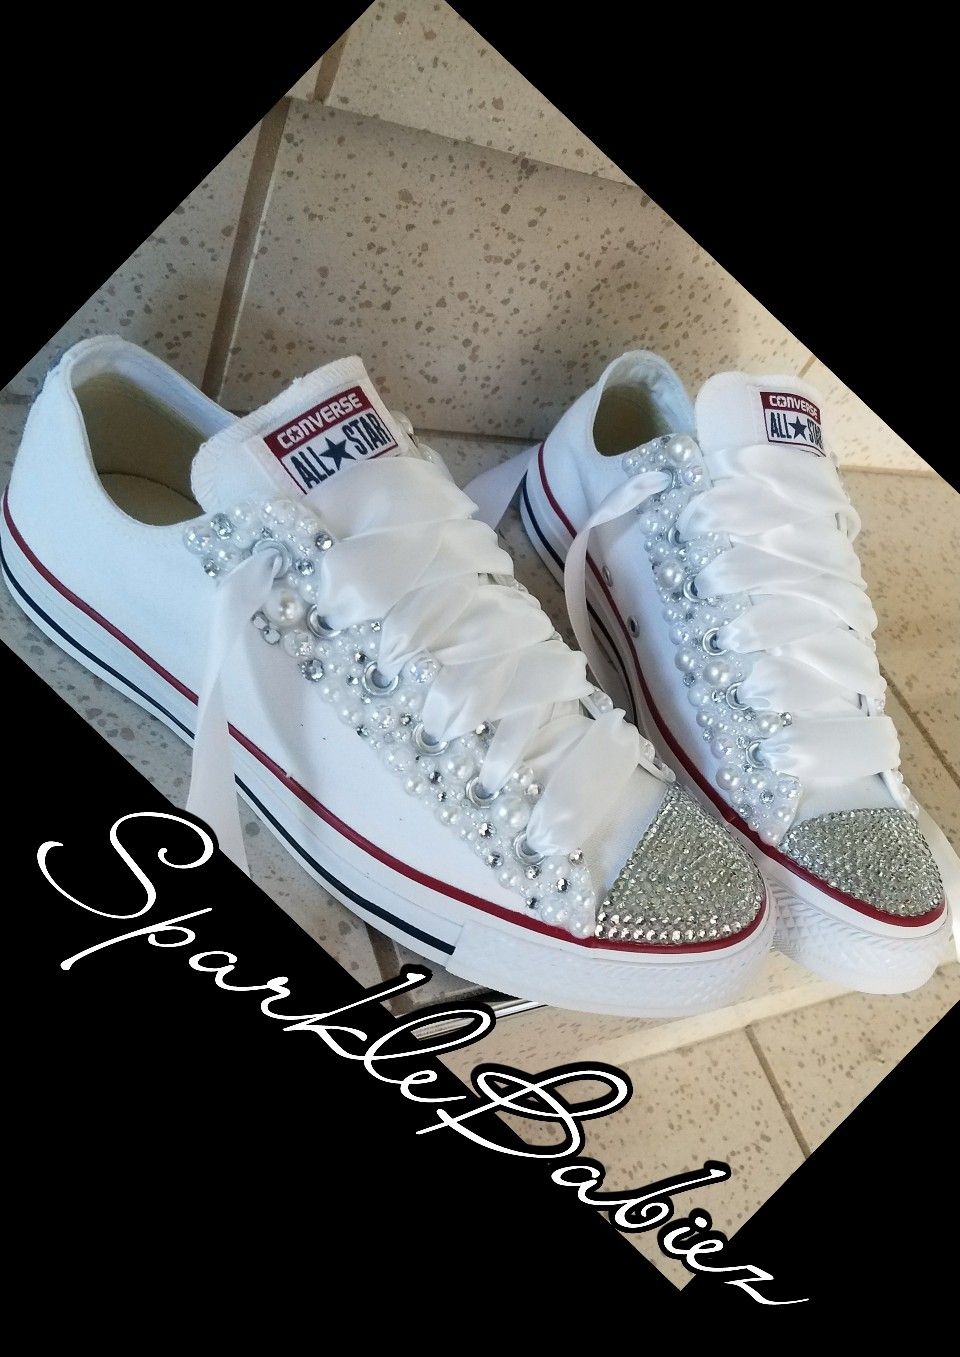 f95cc51a5ead Bling   Pearl Chuck Taylor All Star Converse Wedding Bridal Shoes ...